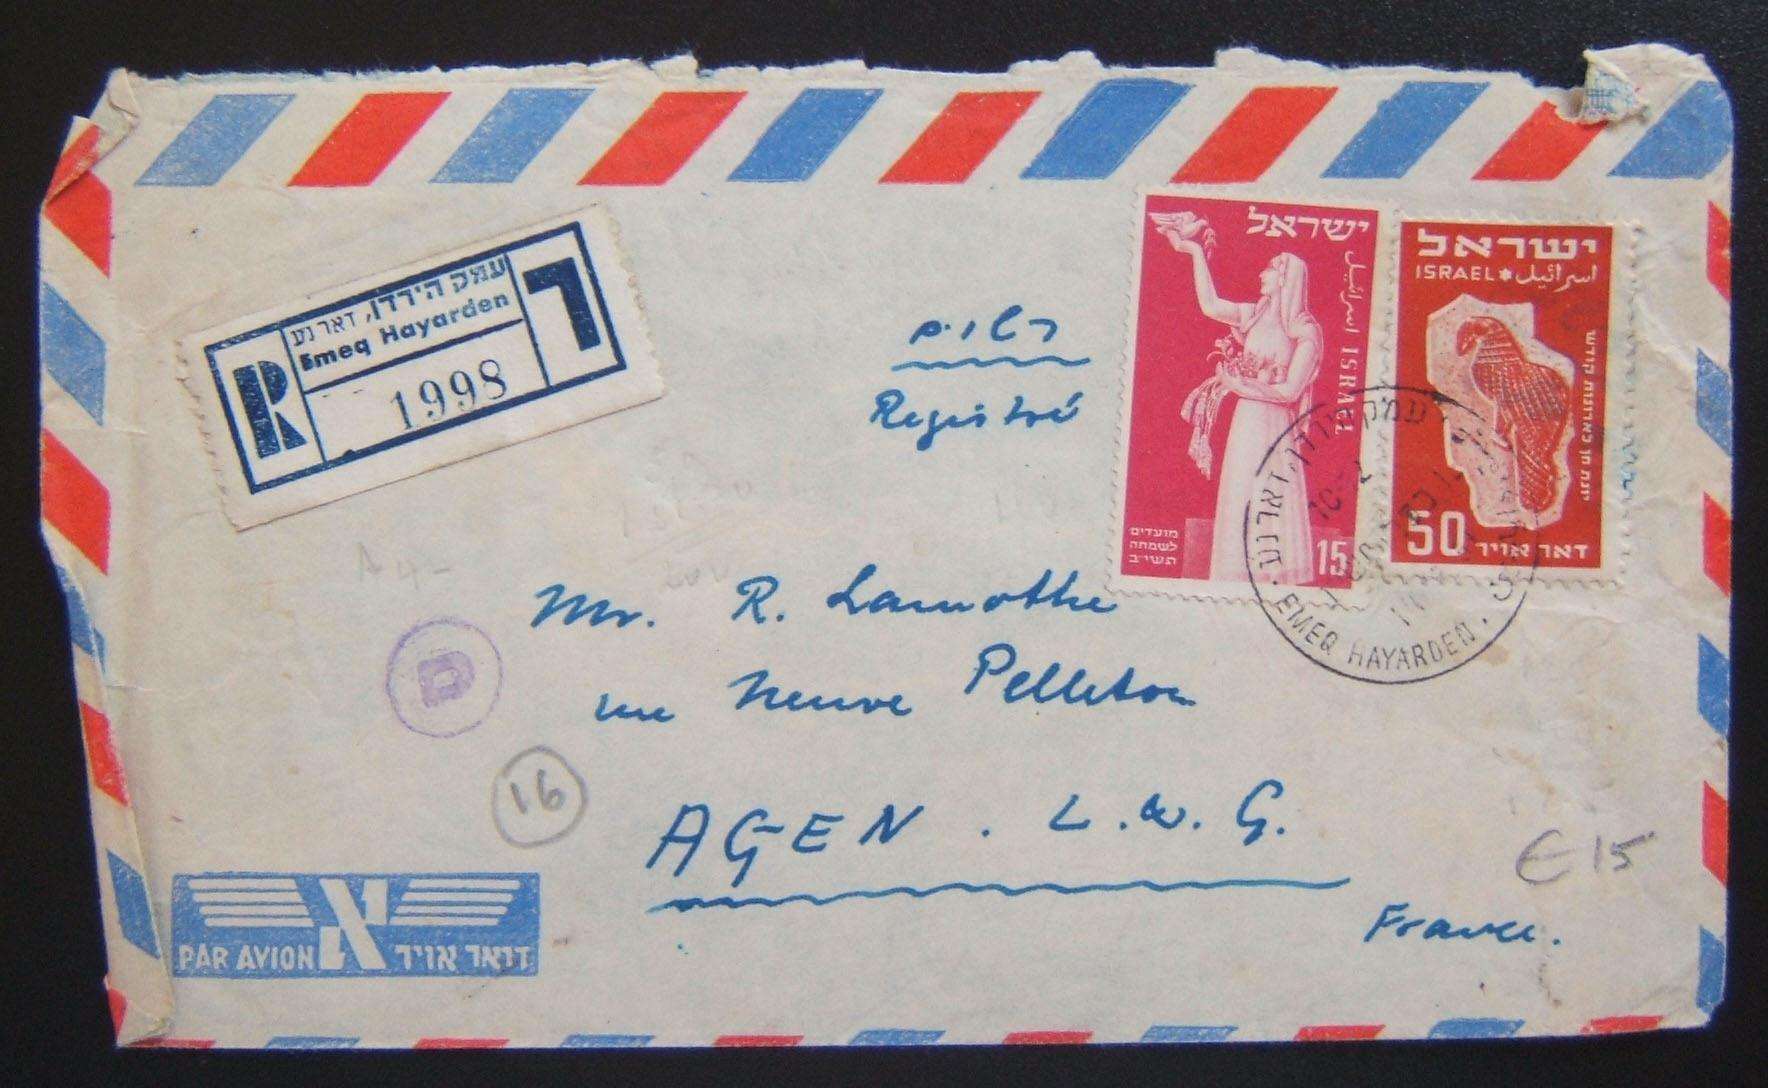 1951 'New Year' / small towns airmail: 14-12-1951 reg. comm cv ex EMEQ HAYARDEN (return address Afikim) to FRANCE franked 65pr at FA-2a period rate (40pr letter + 25pr reg fee), us